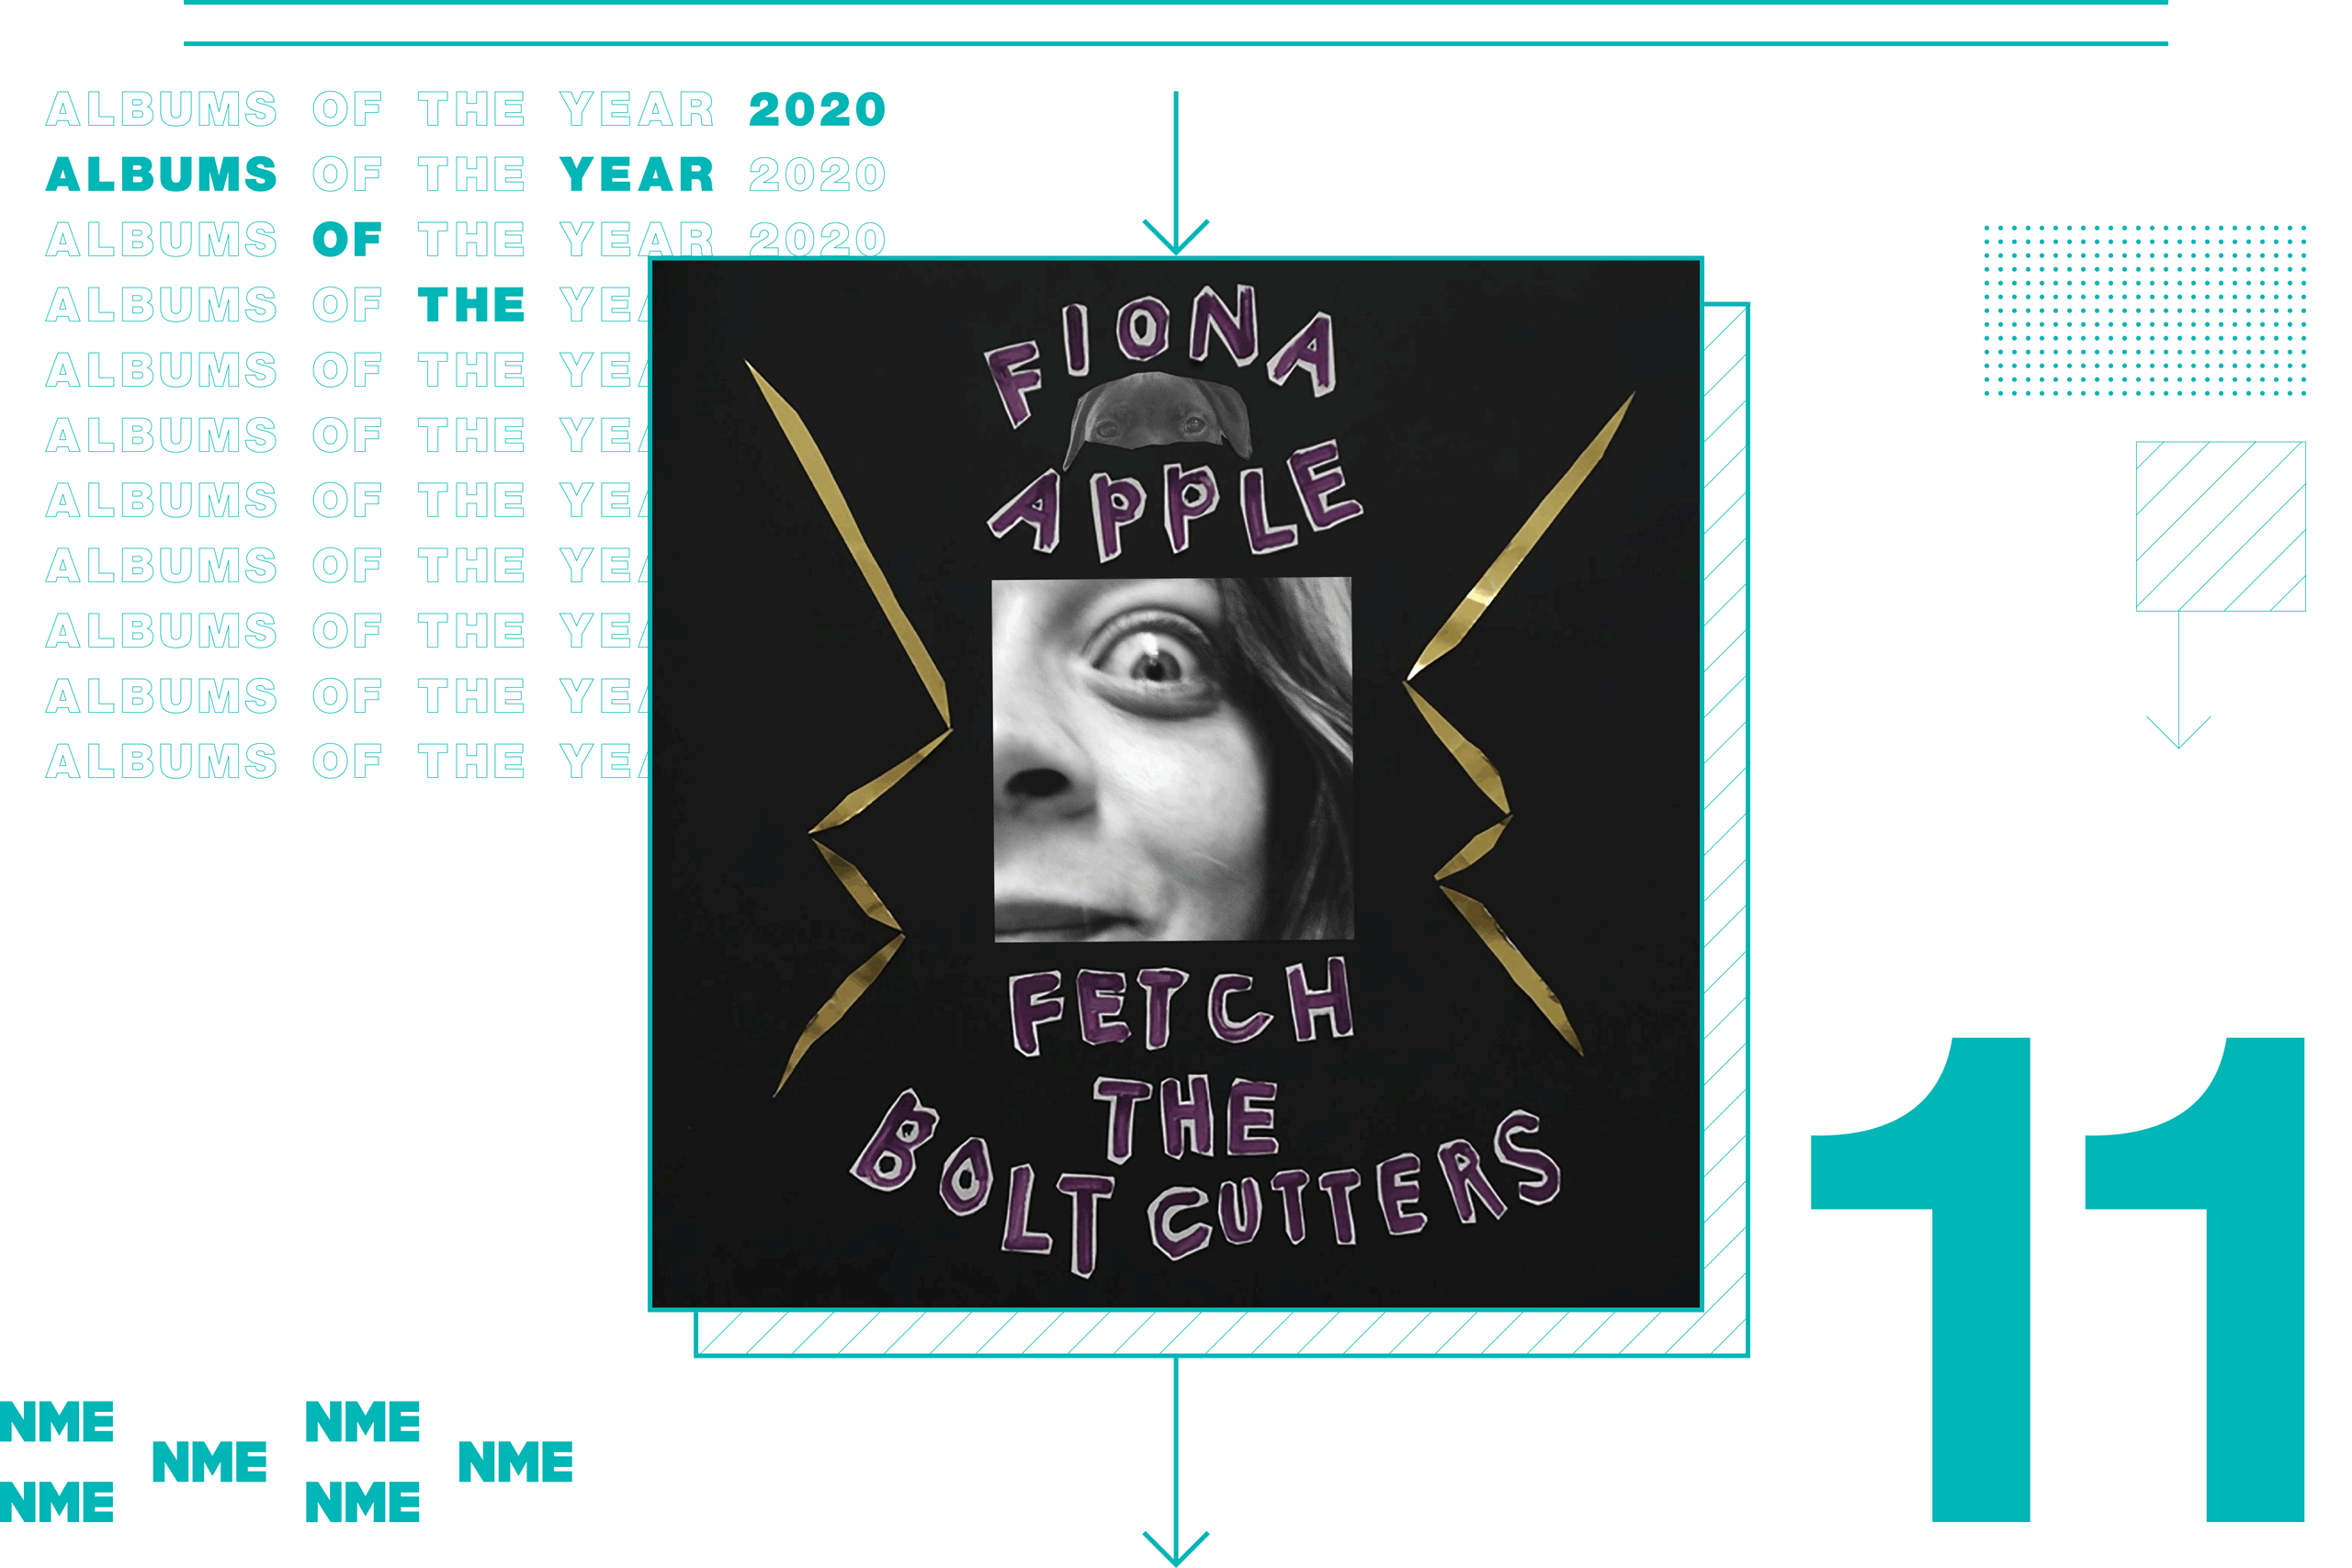 NME Album Of The Year 2020 Fiona Apple – Fetch the Bolt Cutters